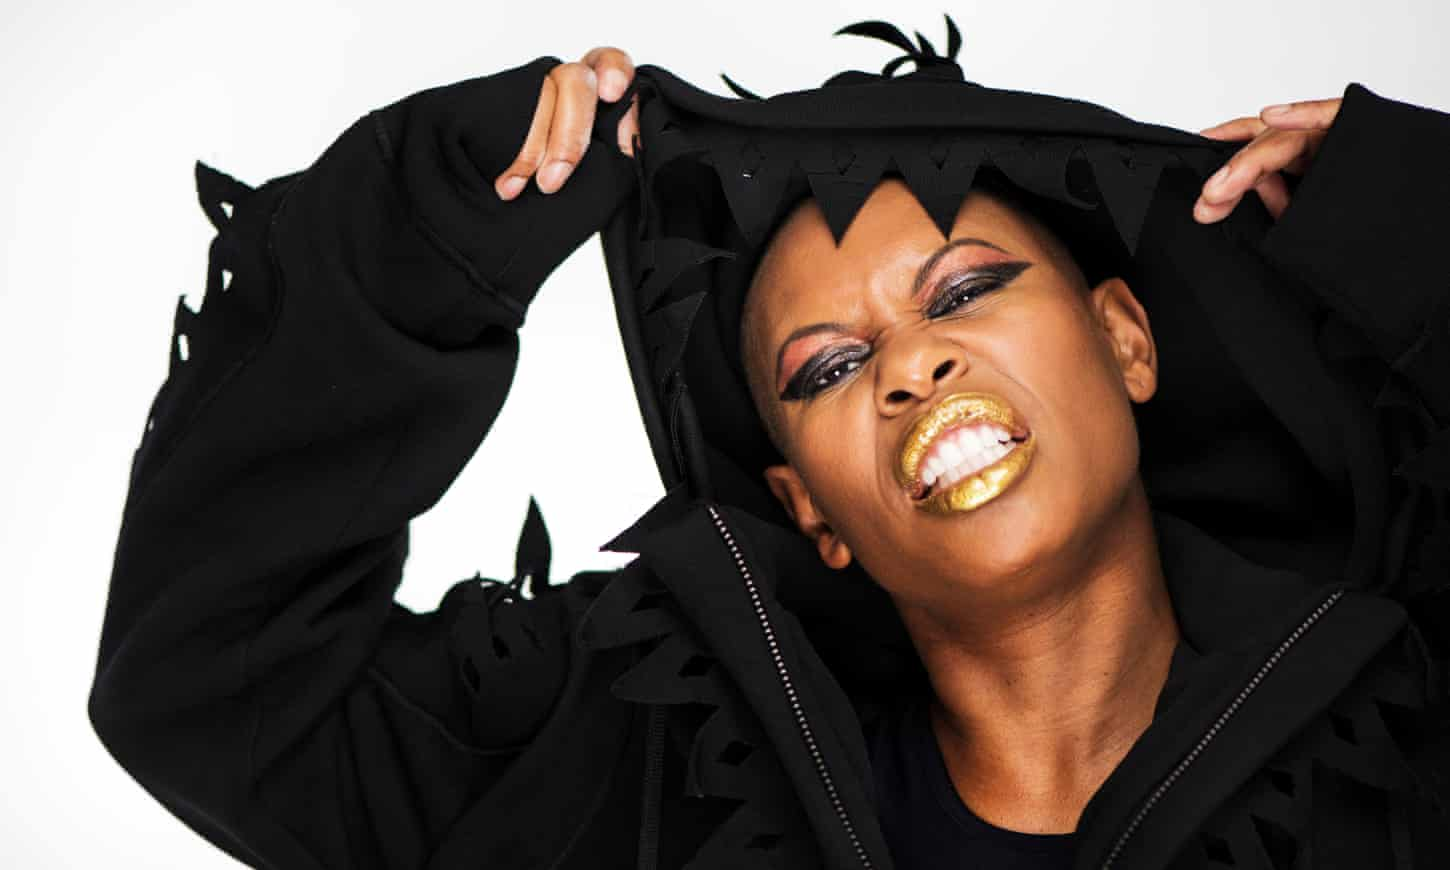 Skunk Anansie's Skin: 'I was irritated when Beyoncé said she was first'